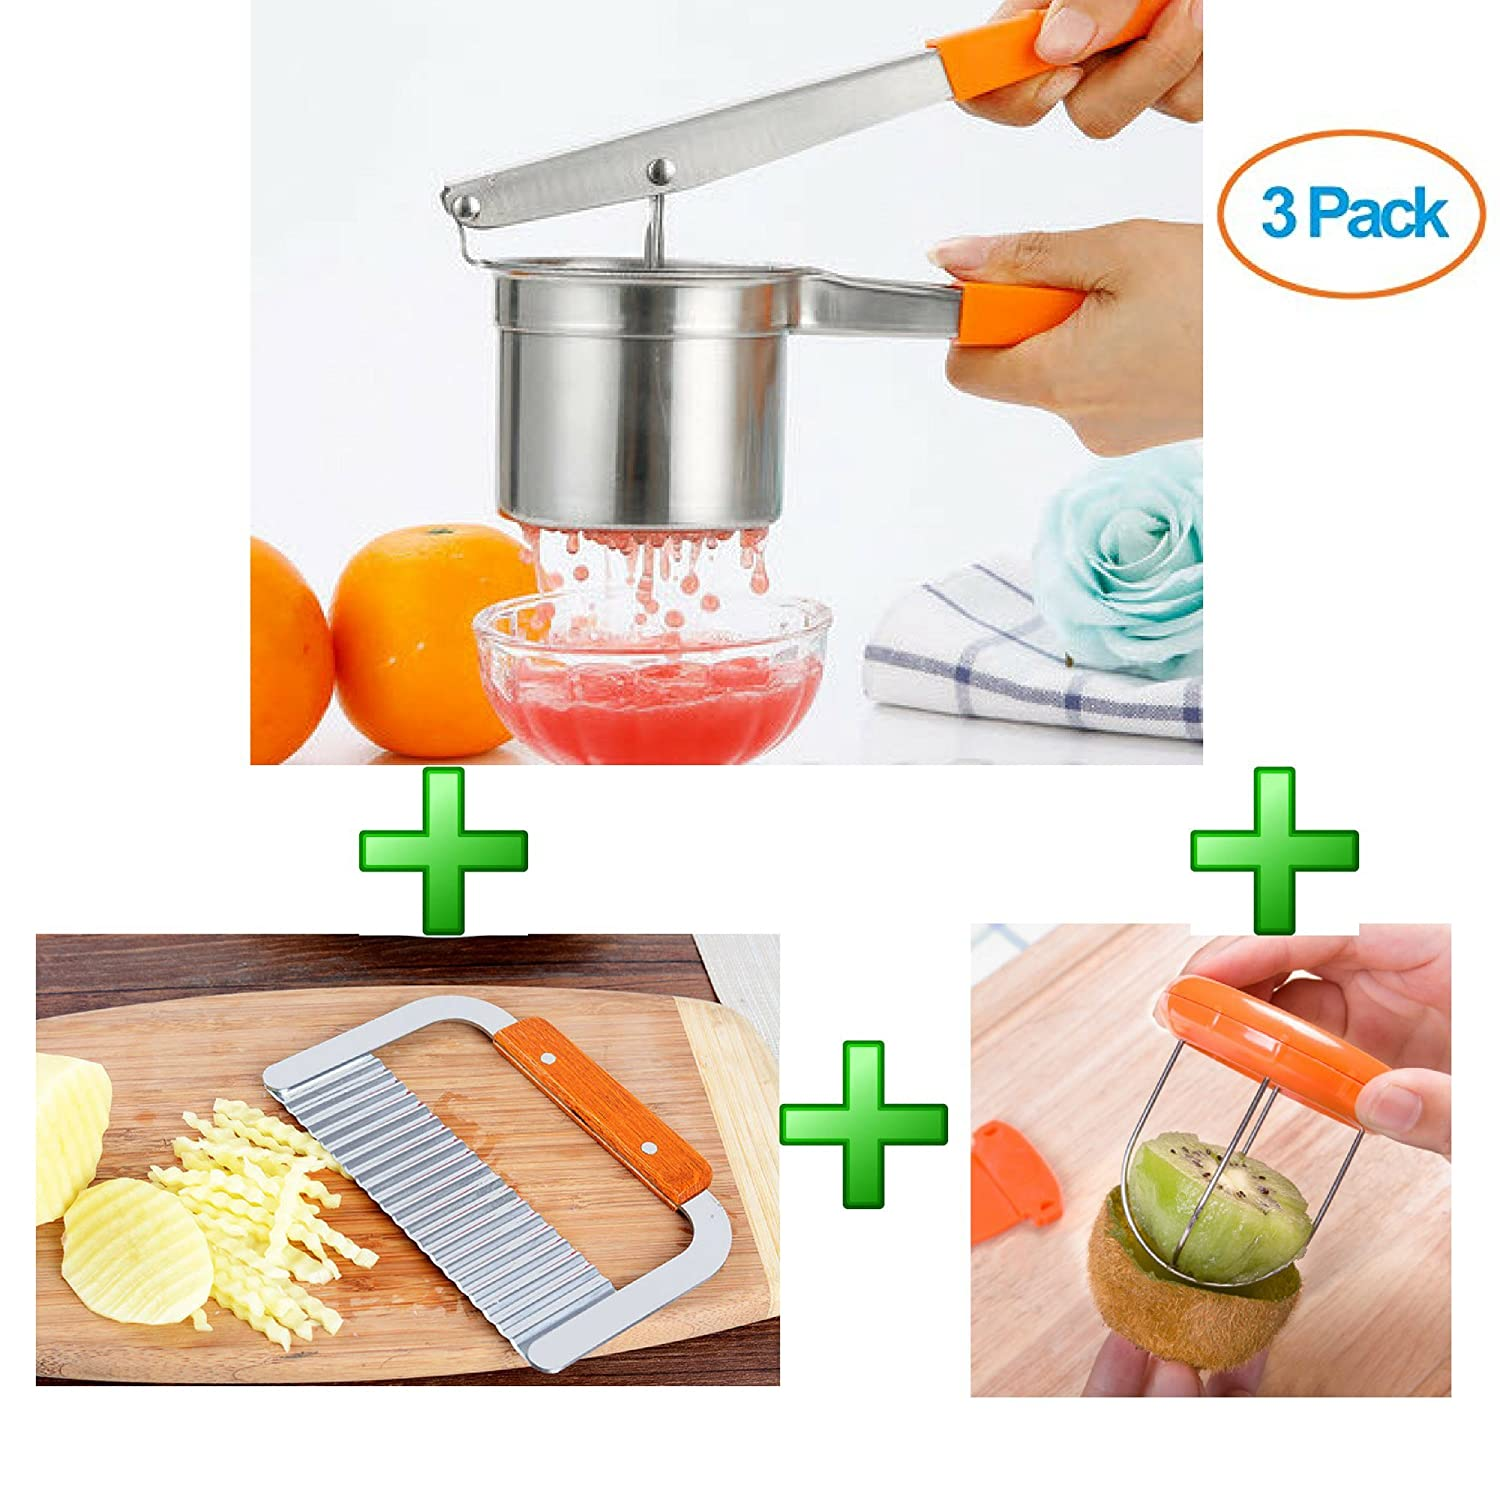 Potato Masher Ricer, Wavy Crinkle Cutter, Peeler and Grater Set - Make French Fries, Mashed Baby Food, Fruit and Veggie Juices Easily (Potato Ricer, Wavy Crinkle Cutter and Free Kiwi cutter) Reliabest COMINHKPR136542